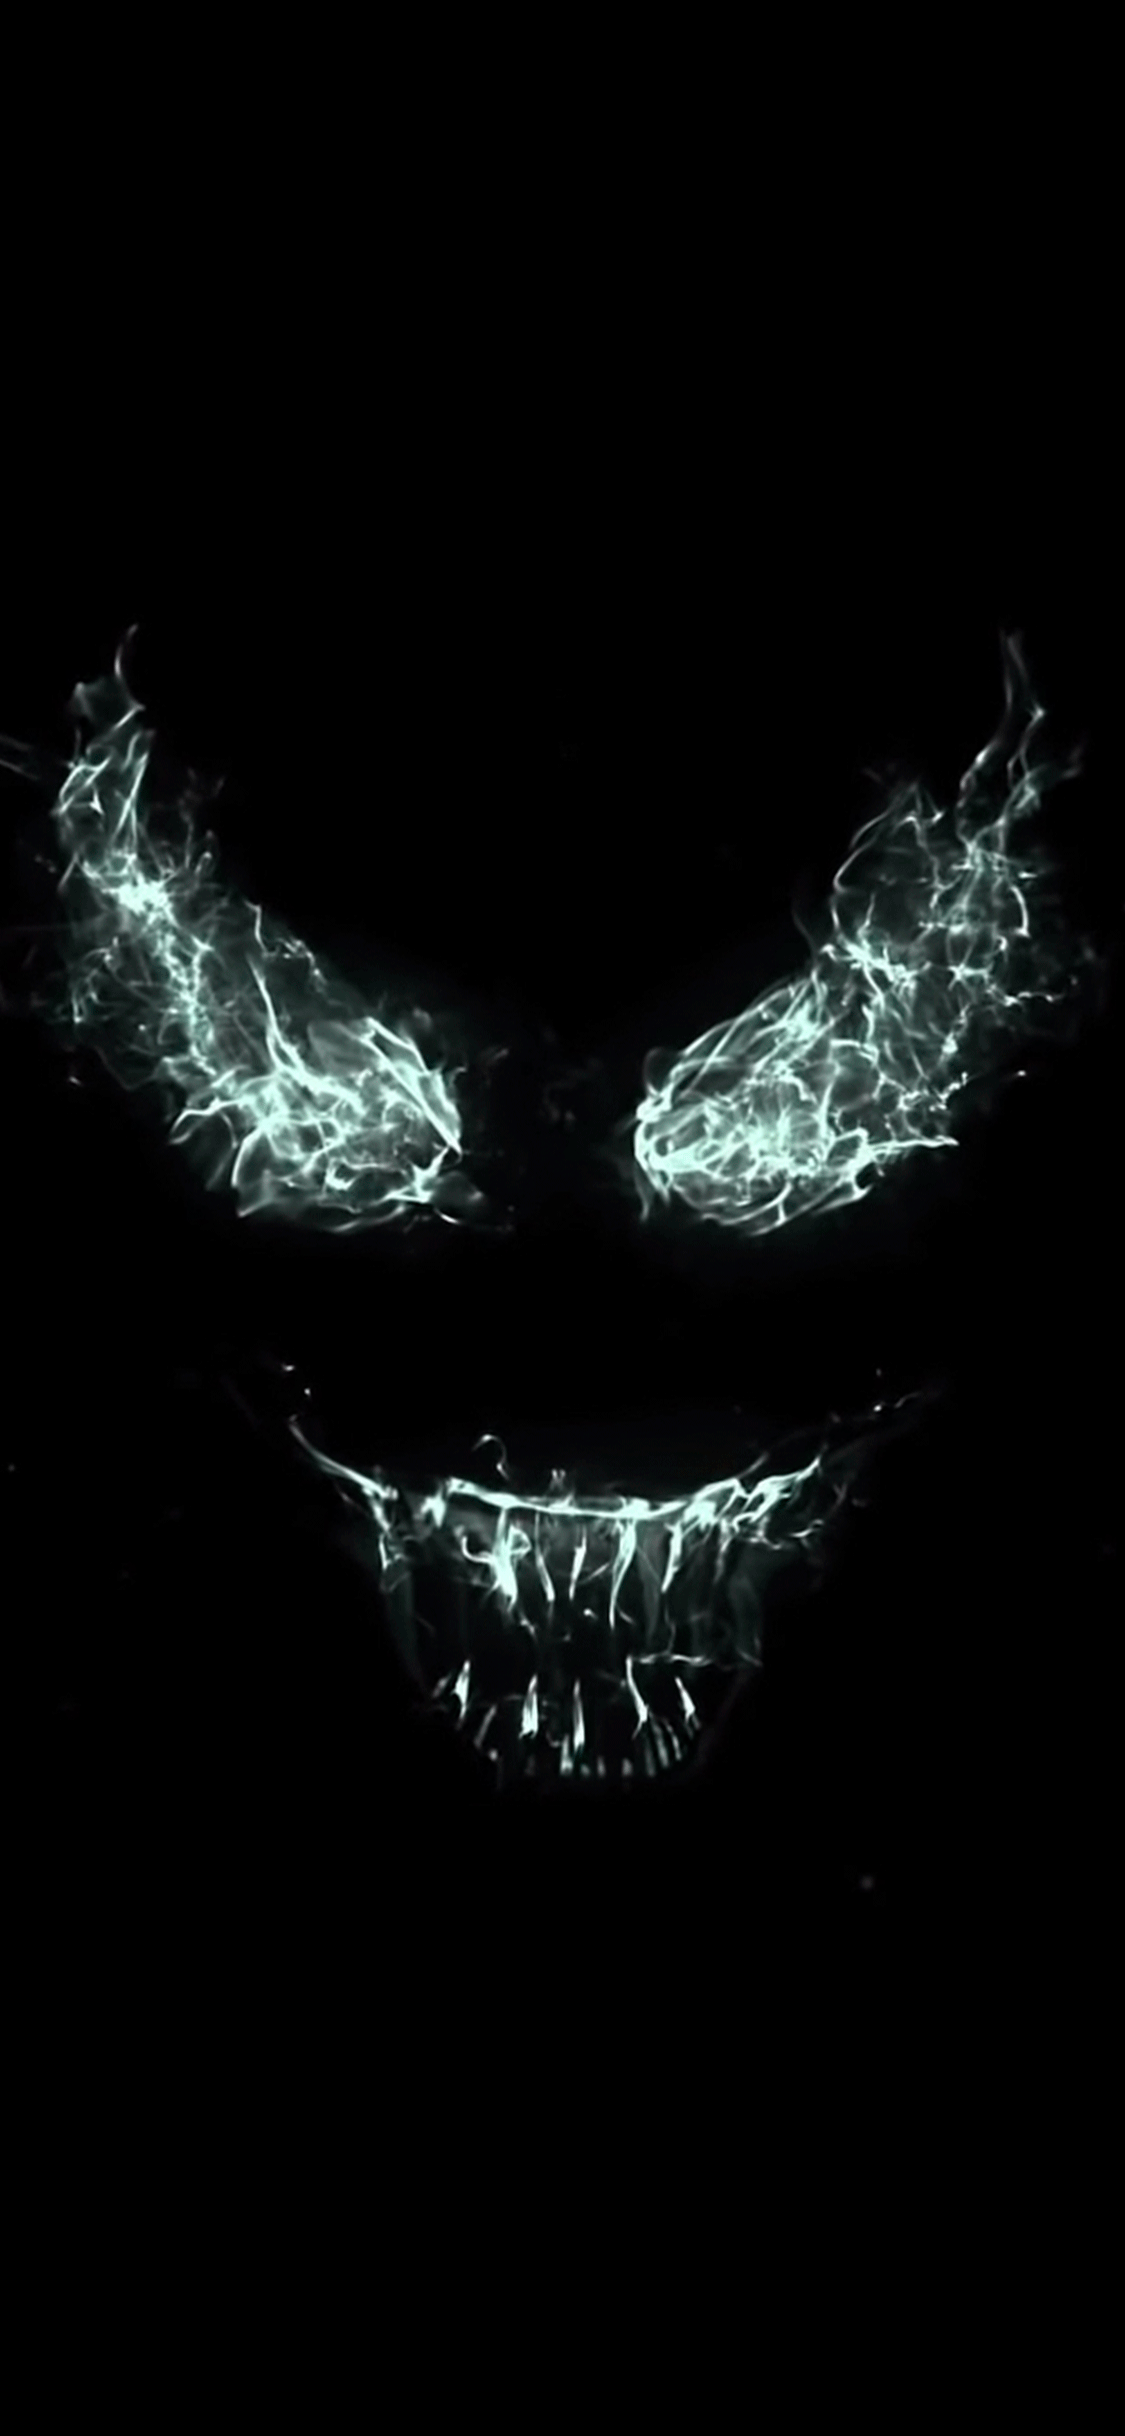 iPhone wallpaper venom movie Fonds d'écran iPhone du 10/10/2018